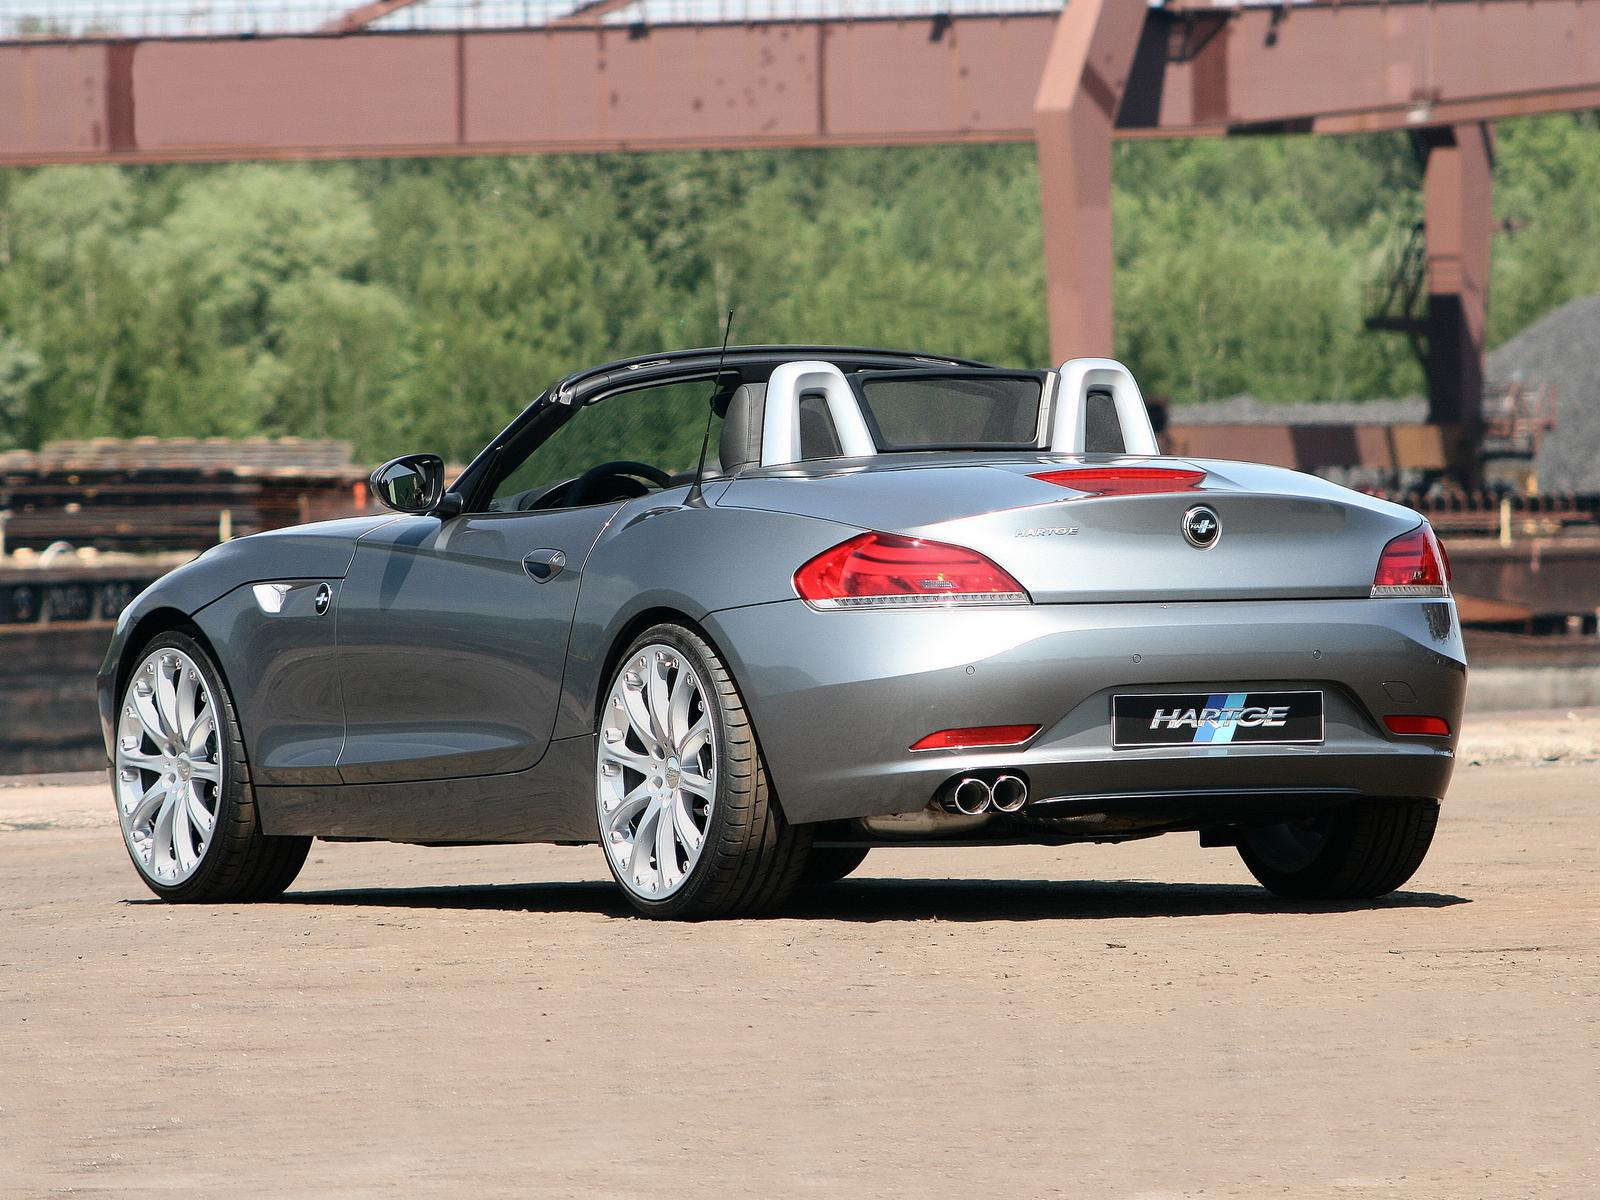 Bmw Z4 Tuning From Hartge Car News